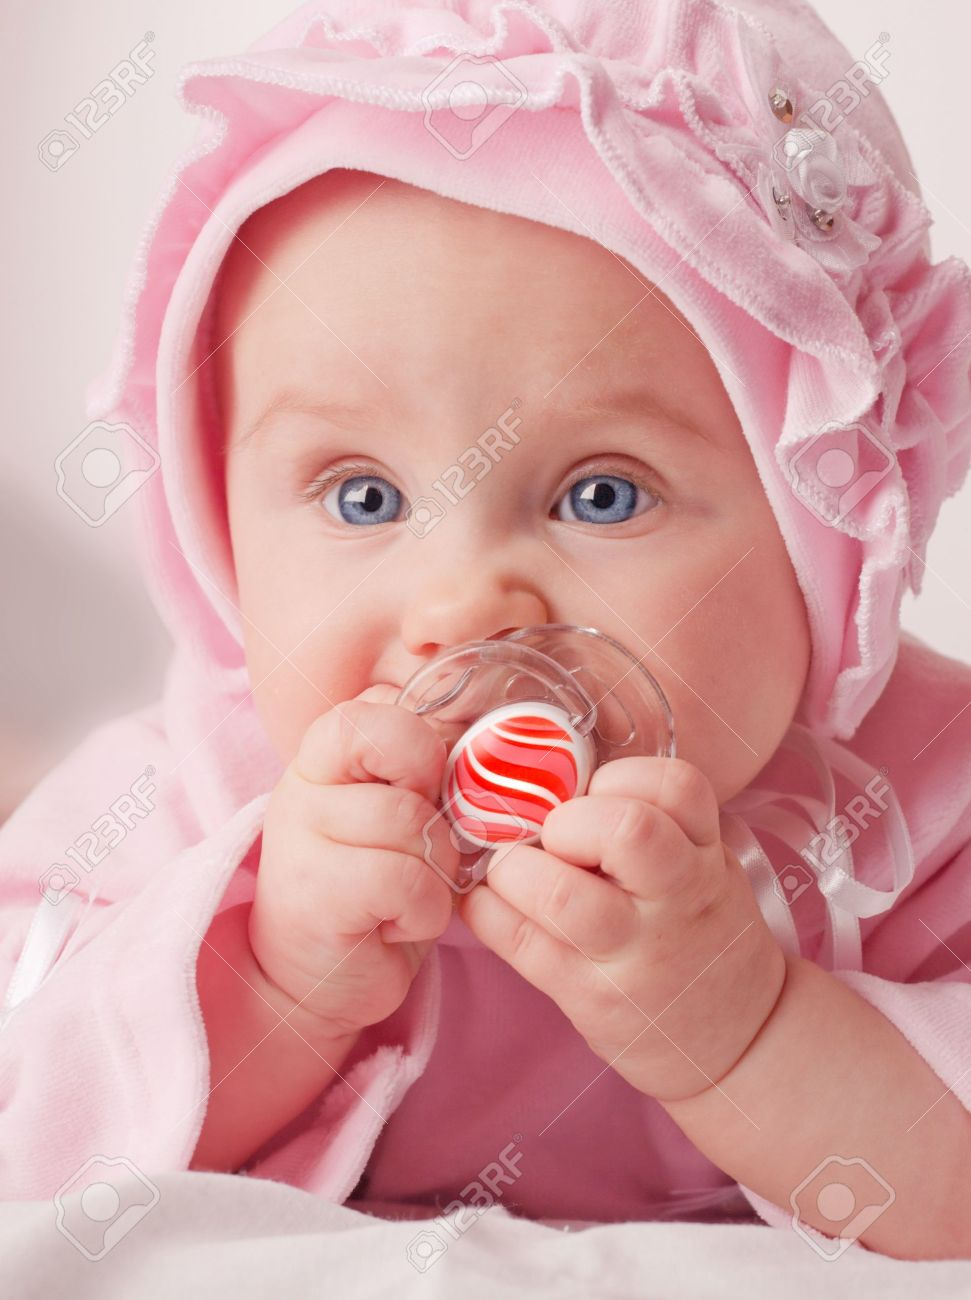 small cute baby holding a red dummy stock photo, picture and royalty